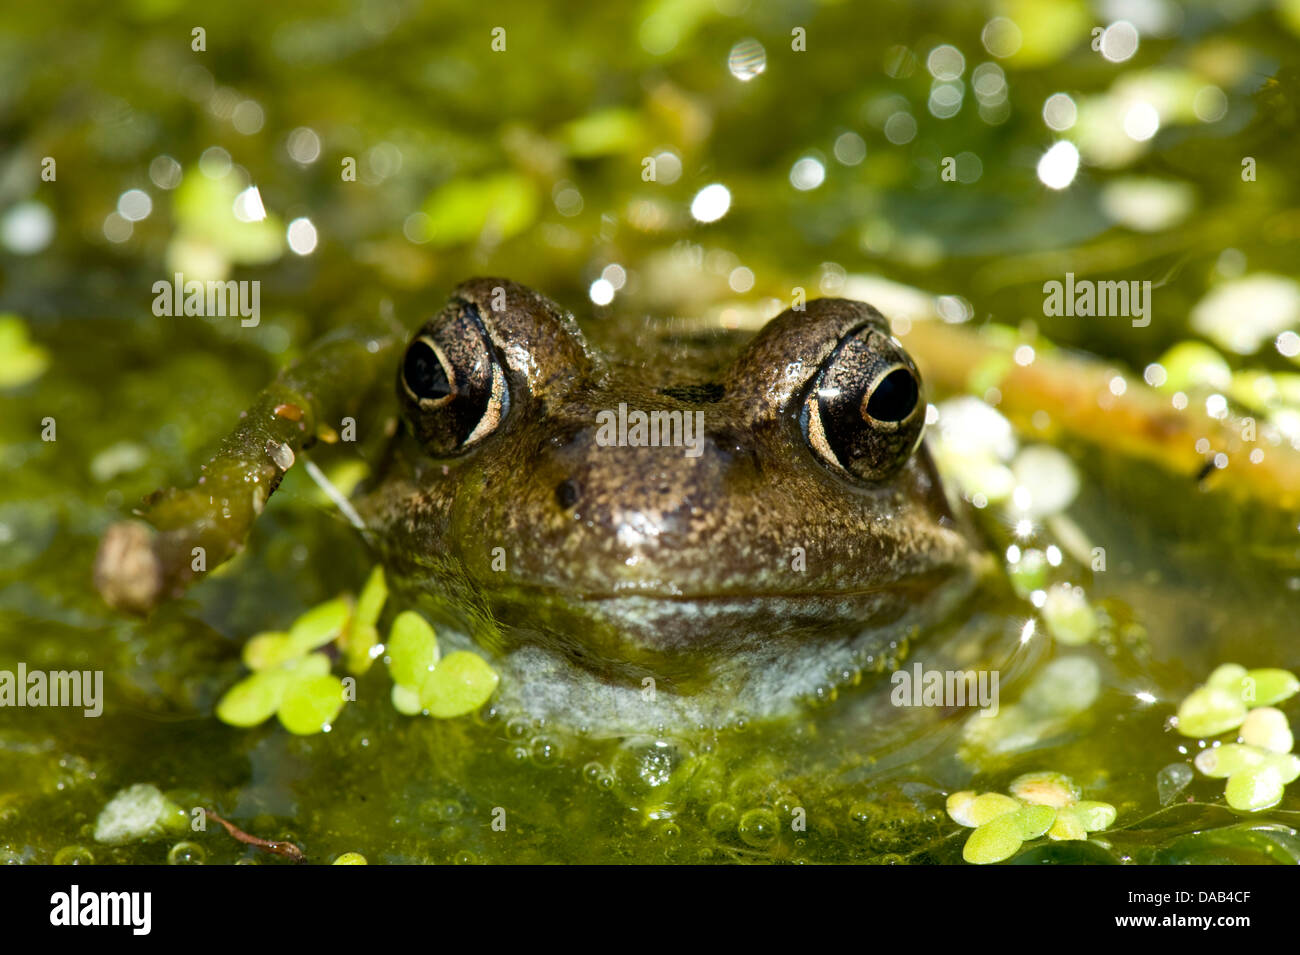 A European frog, Rana temporaria, with its head just above the surfacer of a garden pond with duckweed and blanket - Stock Image